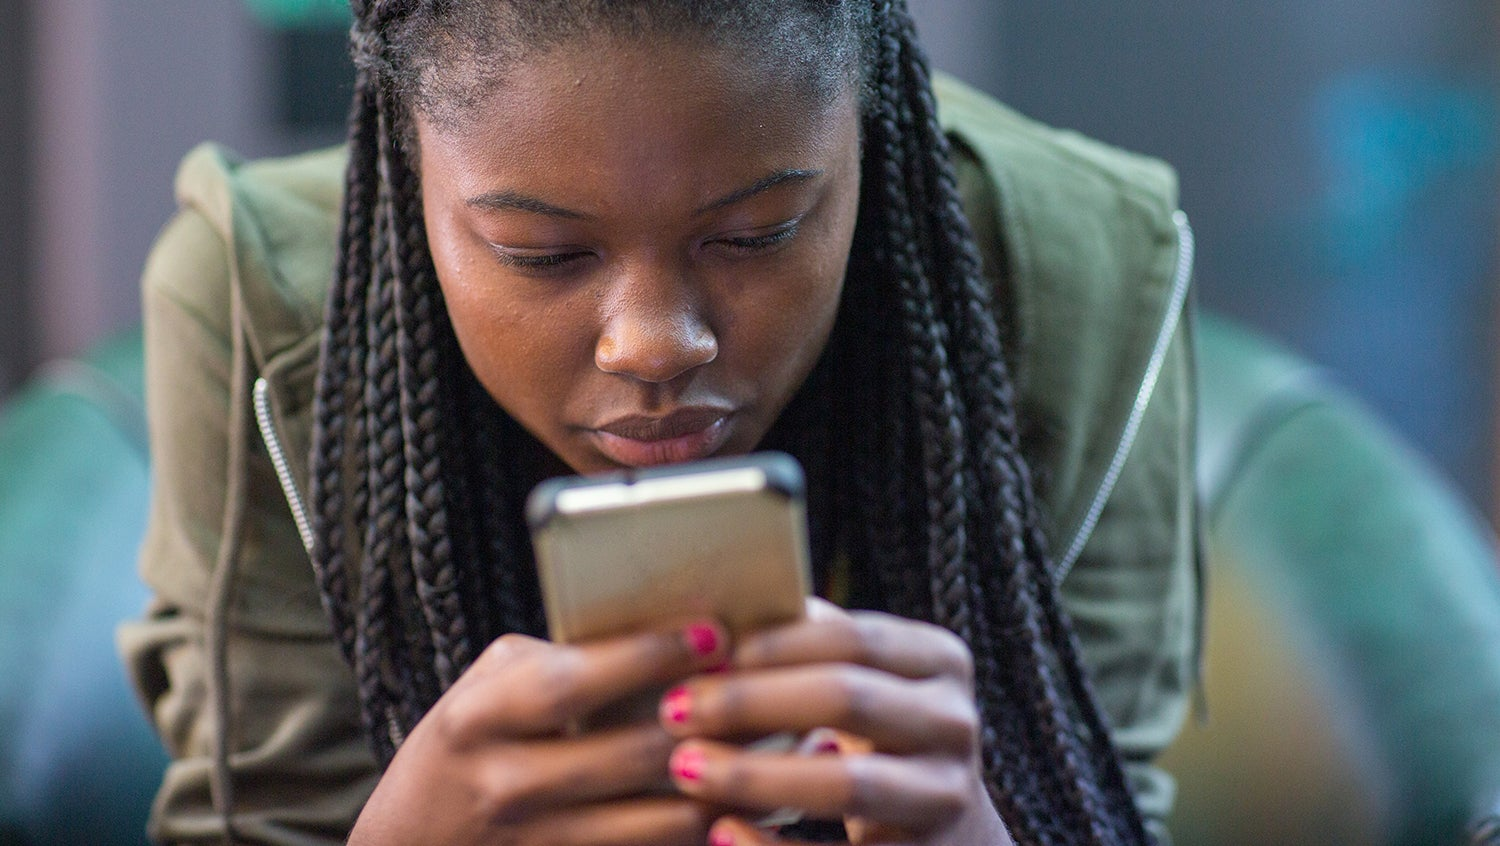 Young black woman stares intently at smartphone screen in her hands